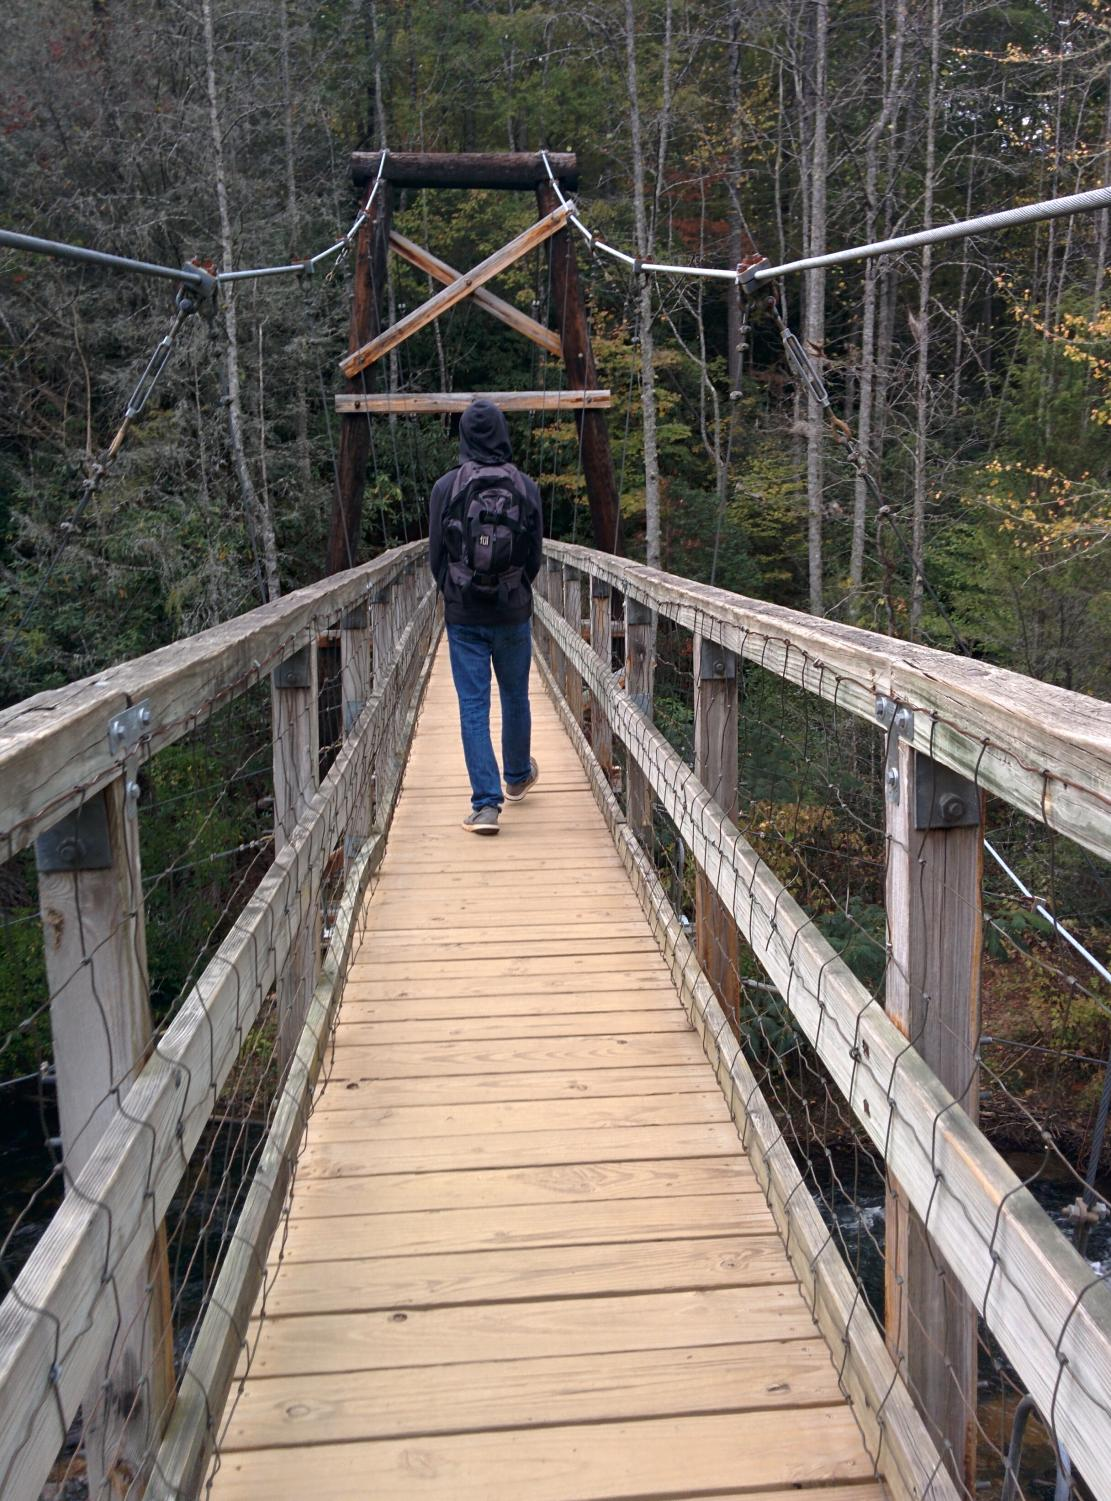 Pictured is the Toccoa River Swinging Bridge in Fannin County, Georgia, right outside of Blue Ridge.